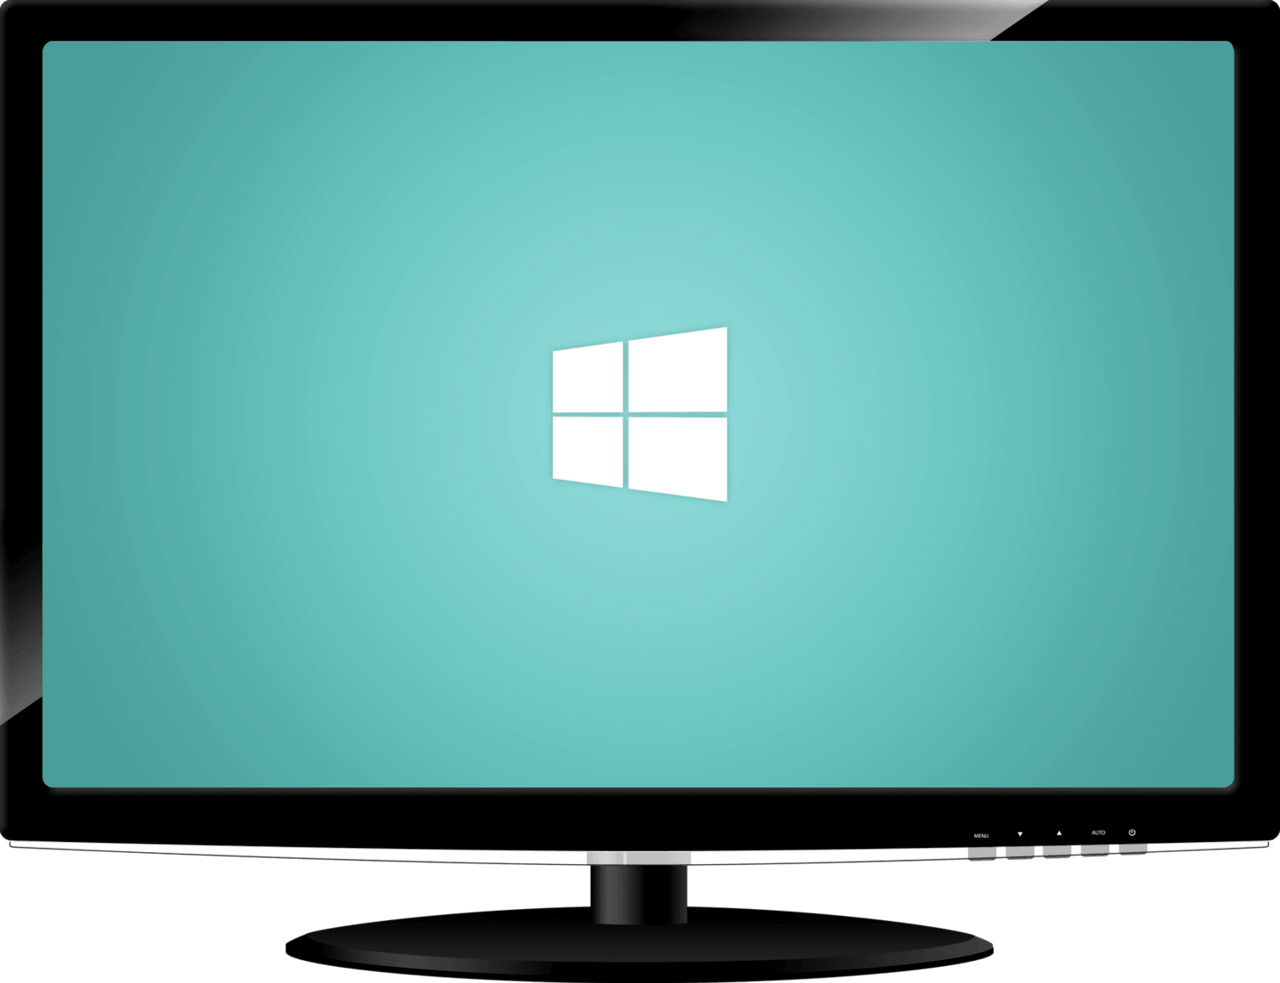 Online LIVE TV unter Windows